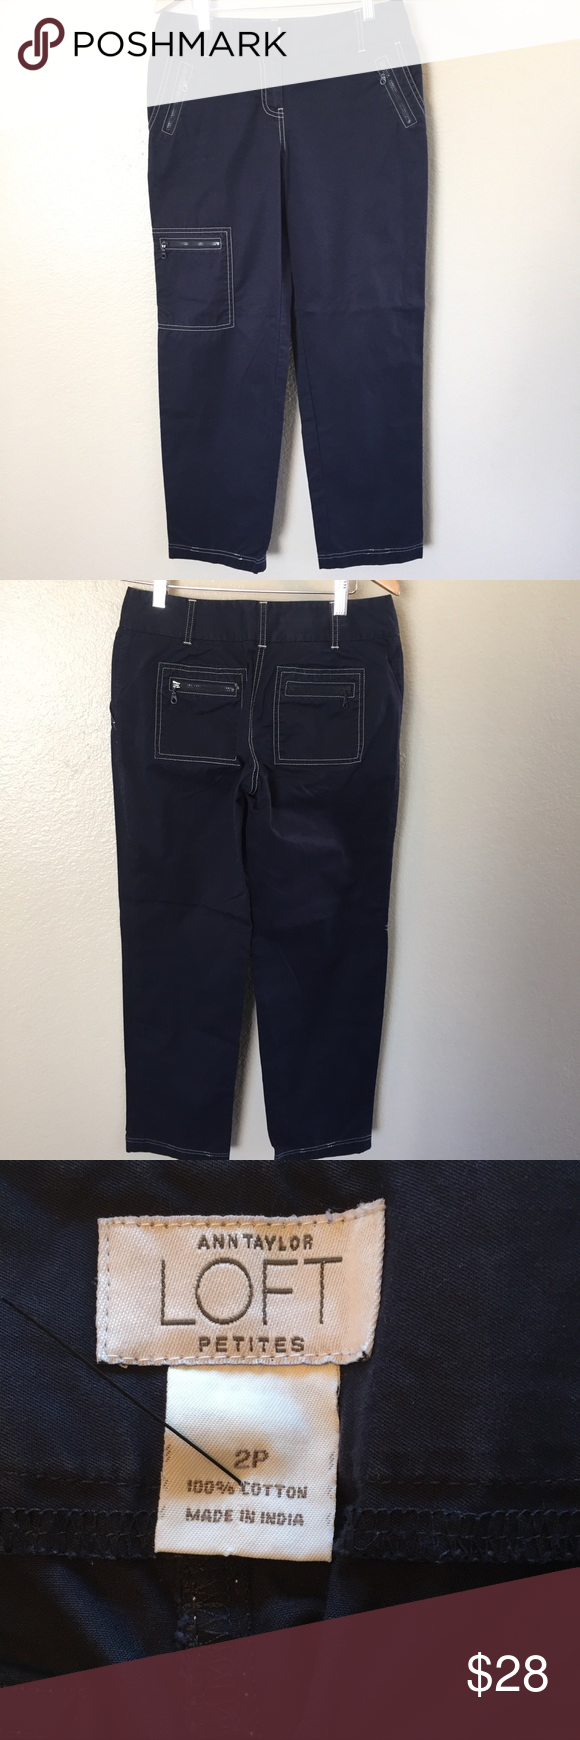 Womens Navy Blue 100 Cotton Capri Pants 2 Petite In 2018 My Posh Jeans Pant Woman 7 9 Mocca 98 Nwot Size Petites 28x28 Loft Capris